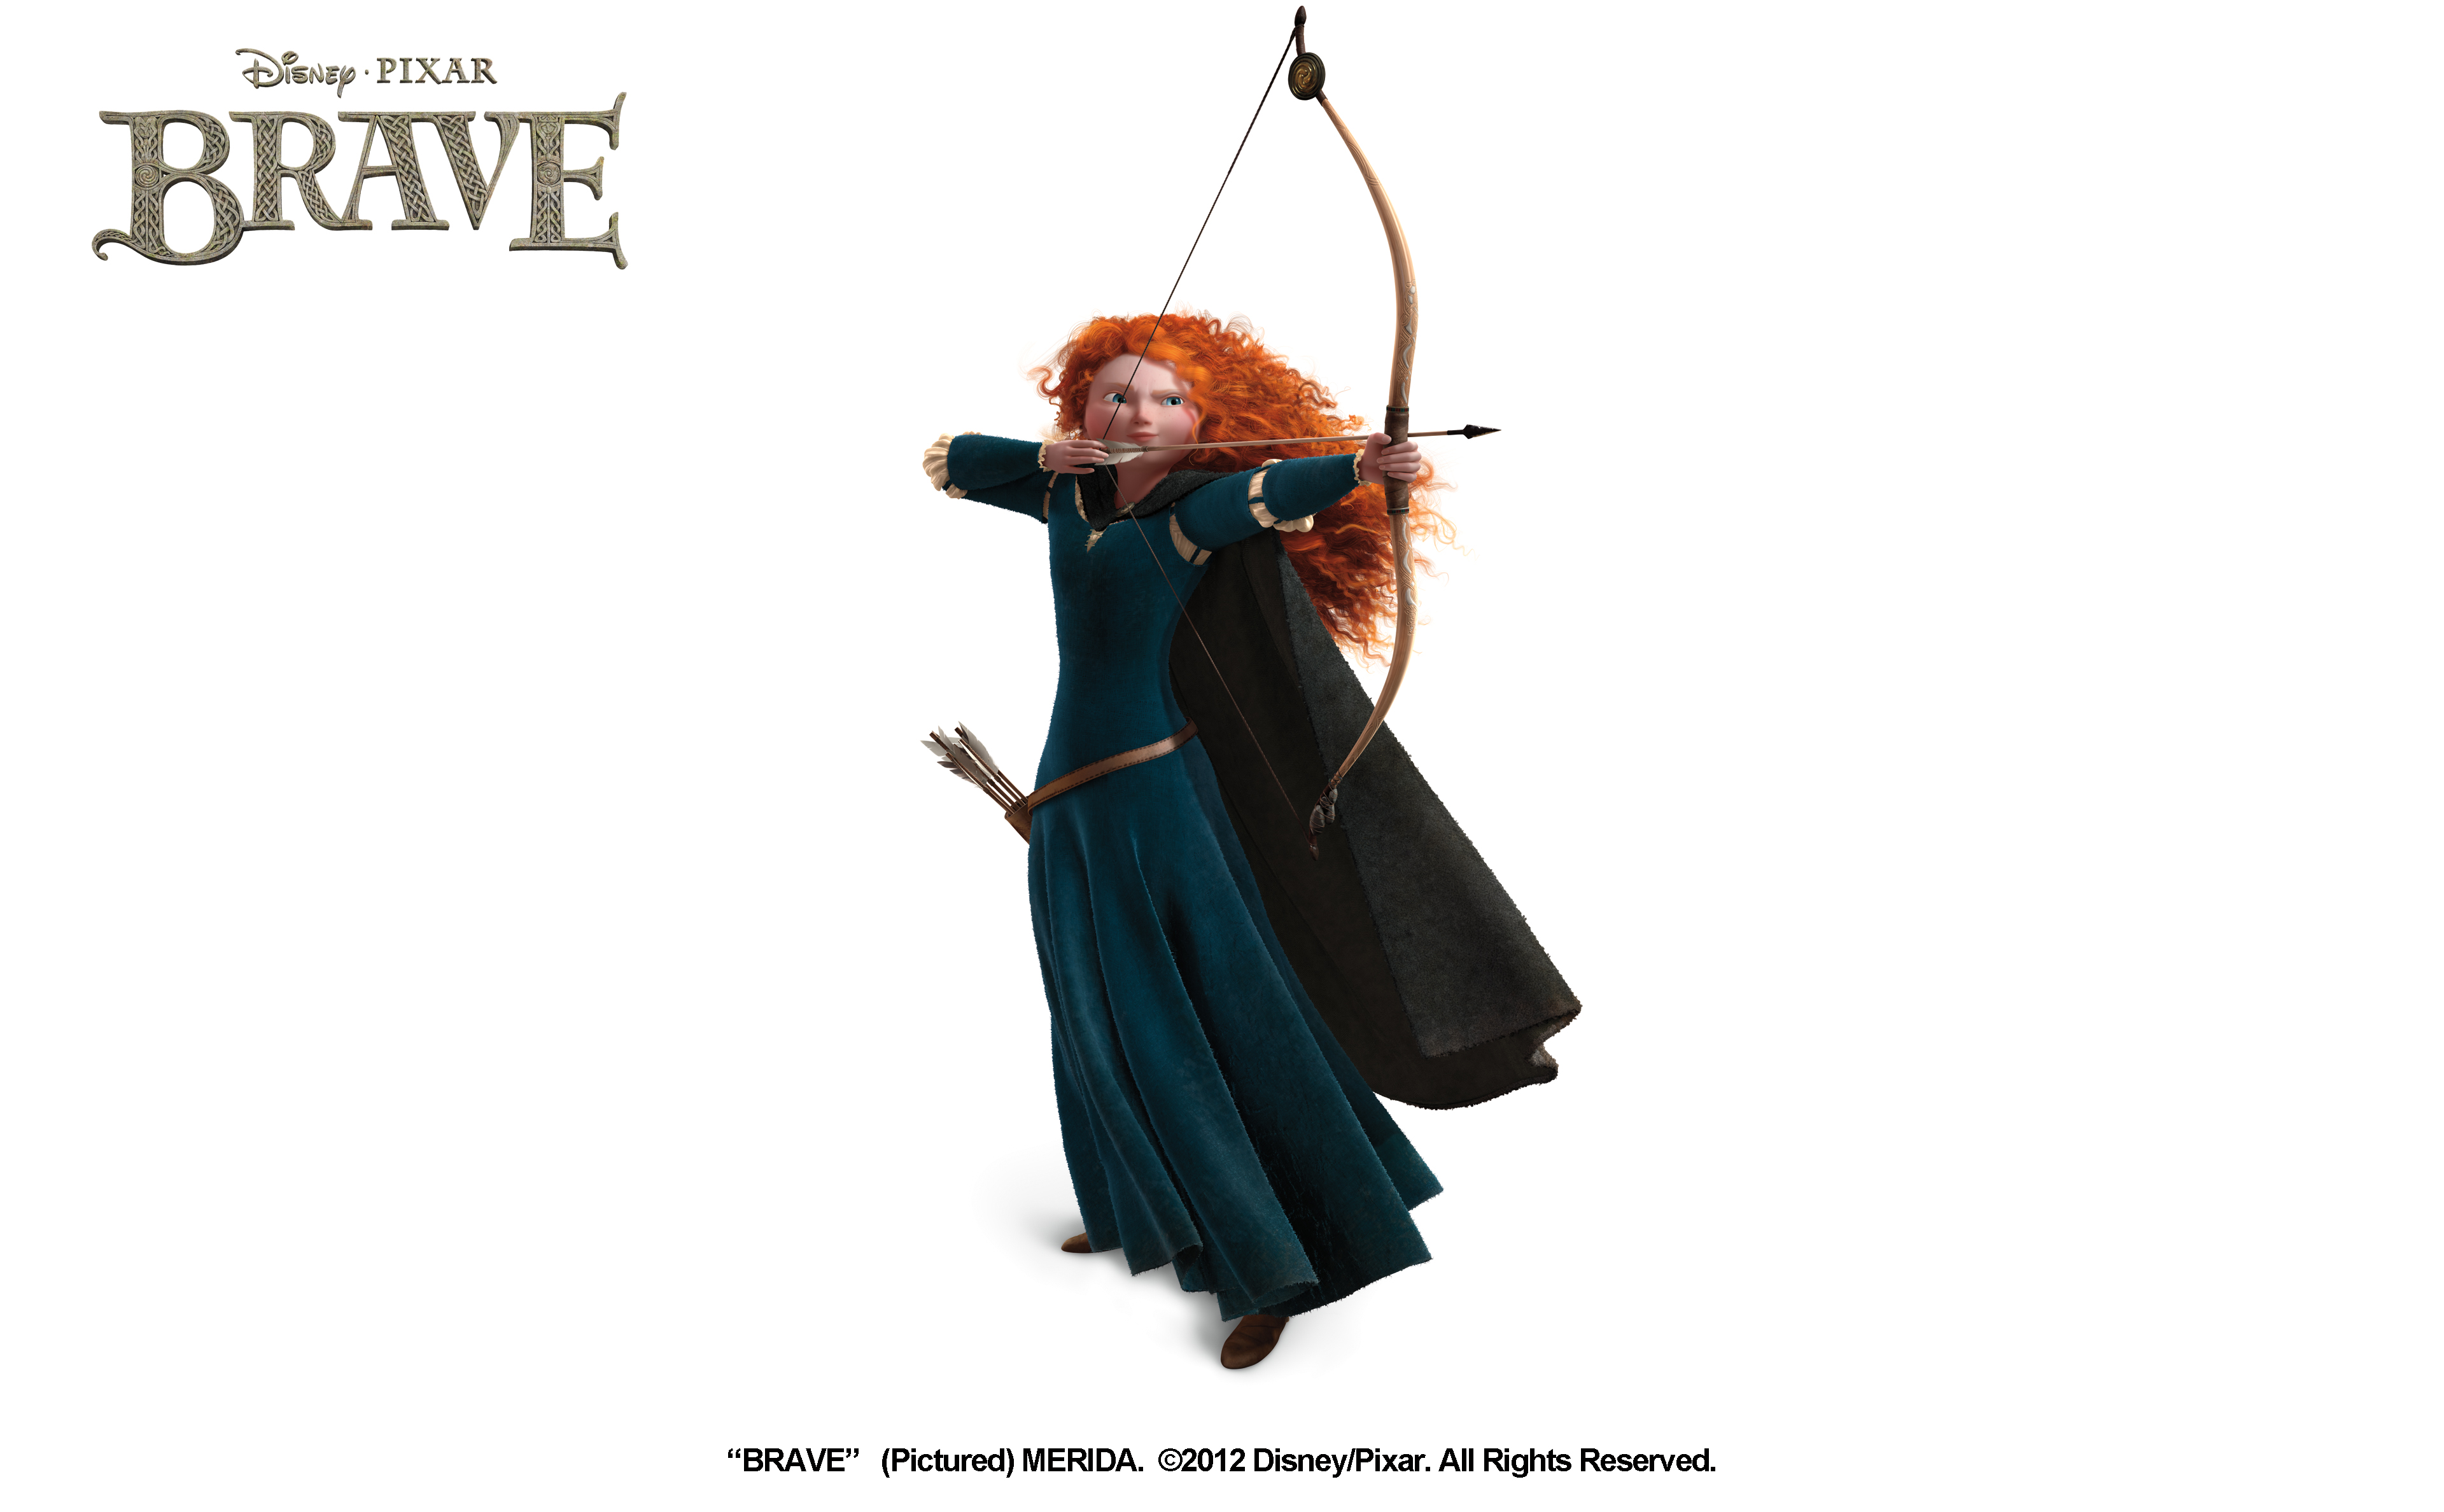 Brave concept art speaking, would